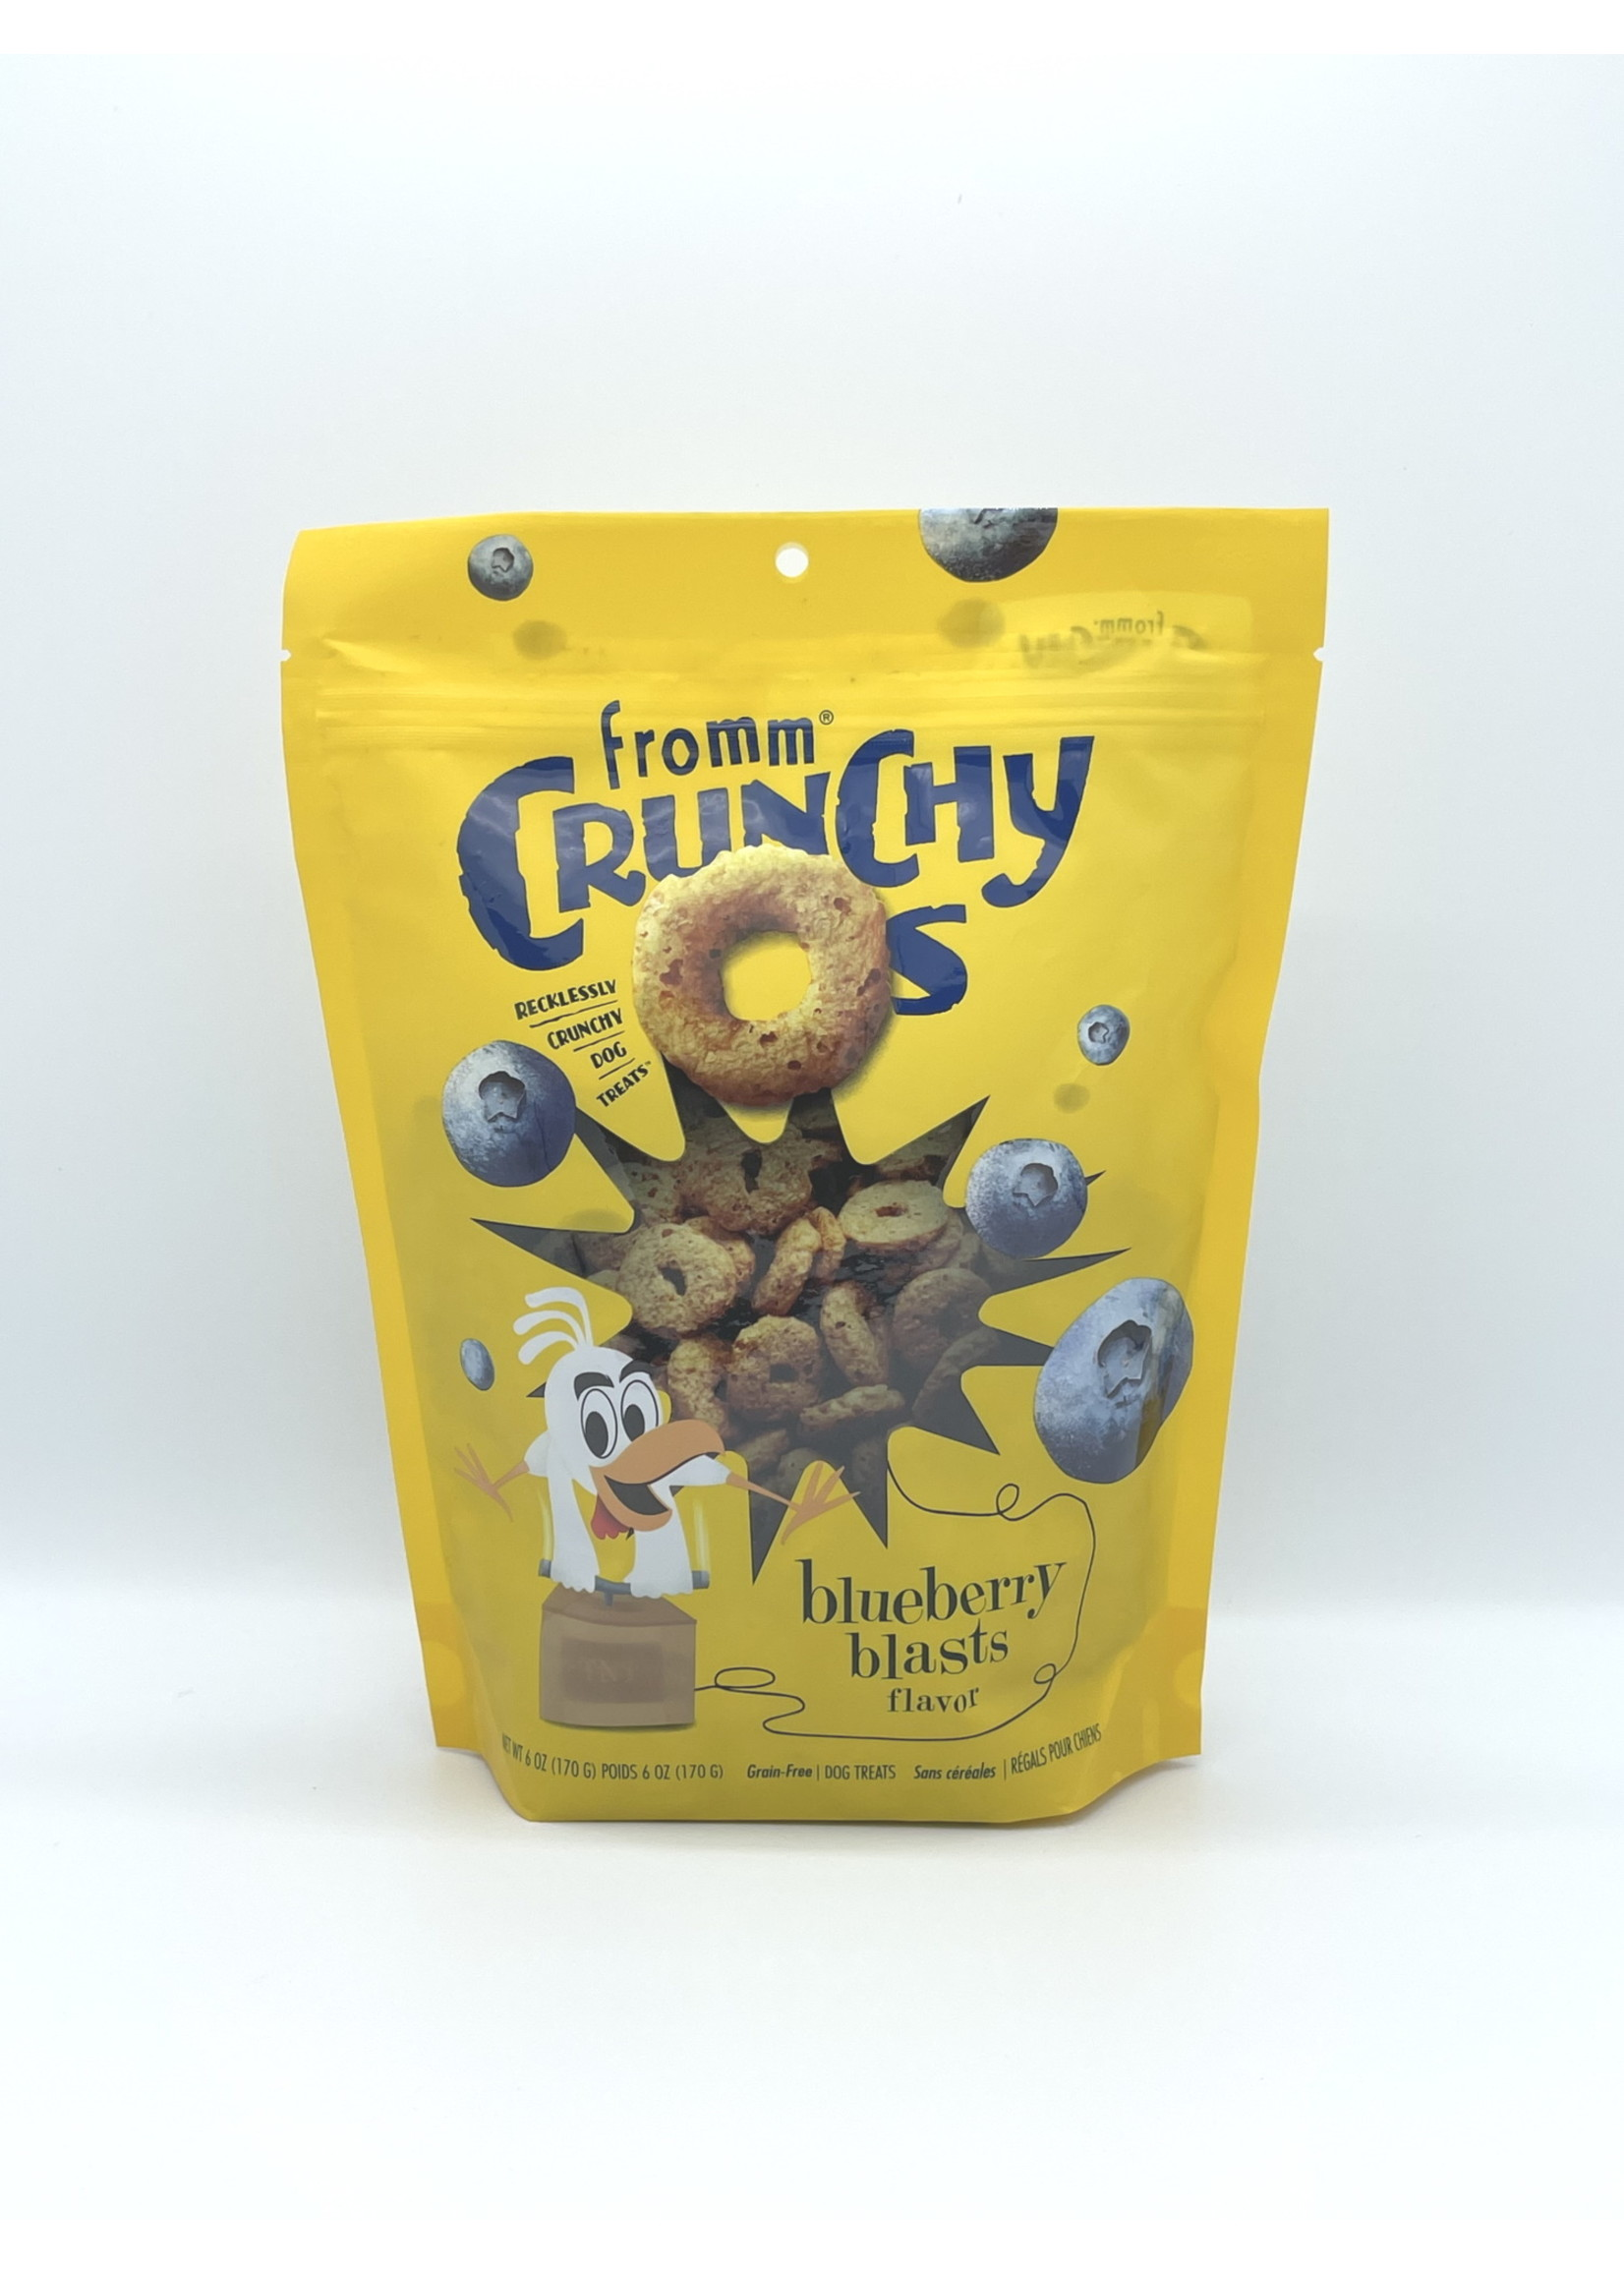 Fromm Fromm Crunch O's Blueberry Blast